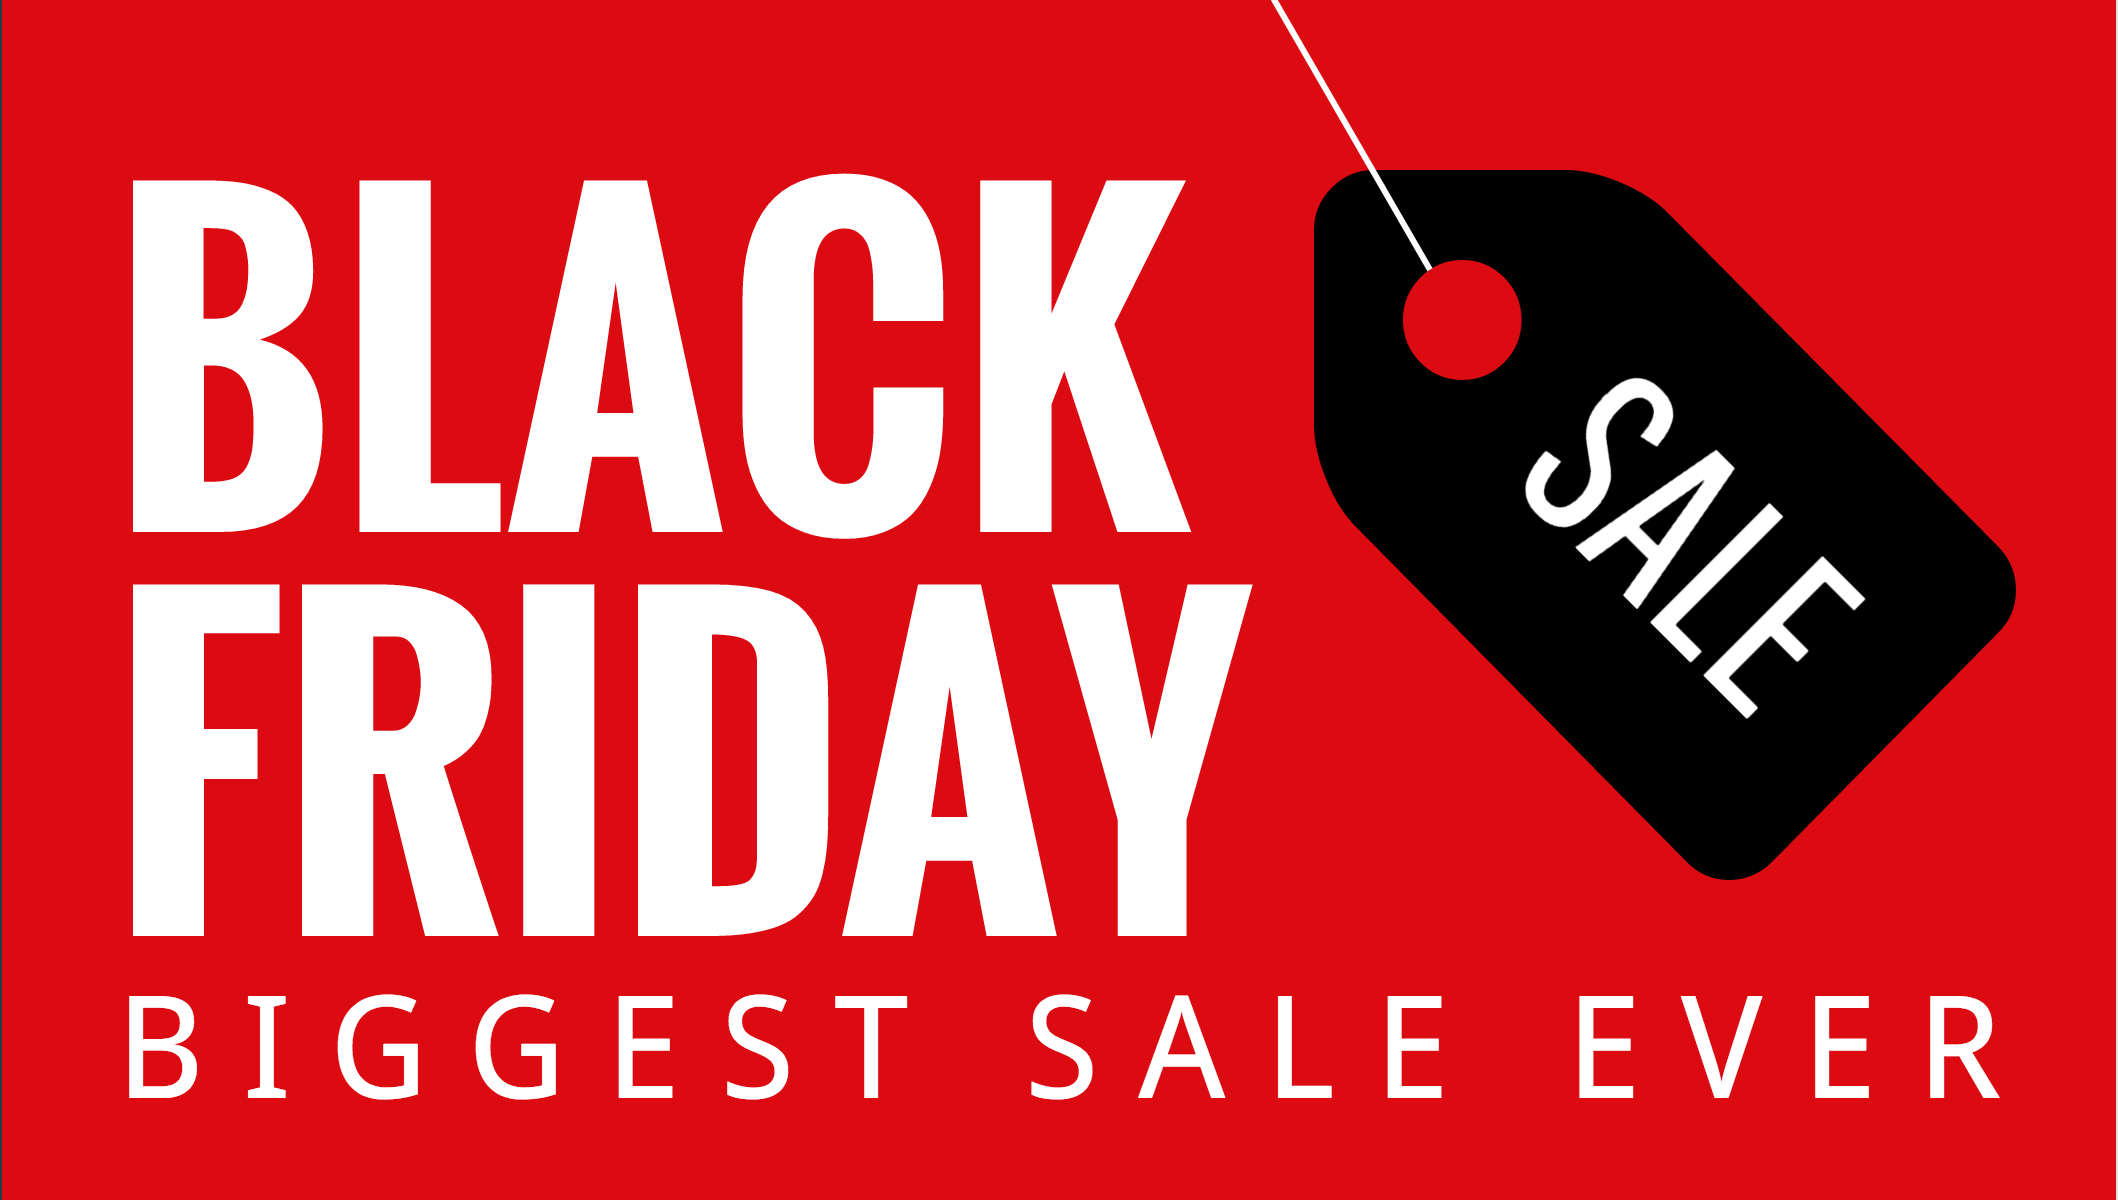 Www Black Friday All Black Friday And Cyber Monday 2017 Hot Offers In One